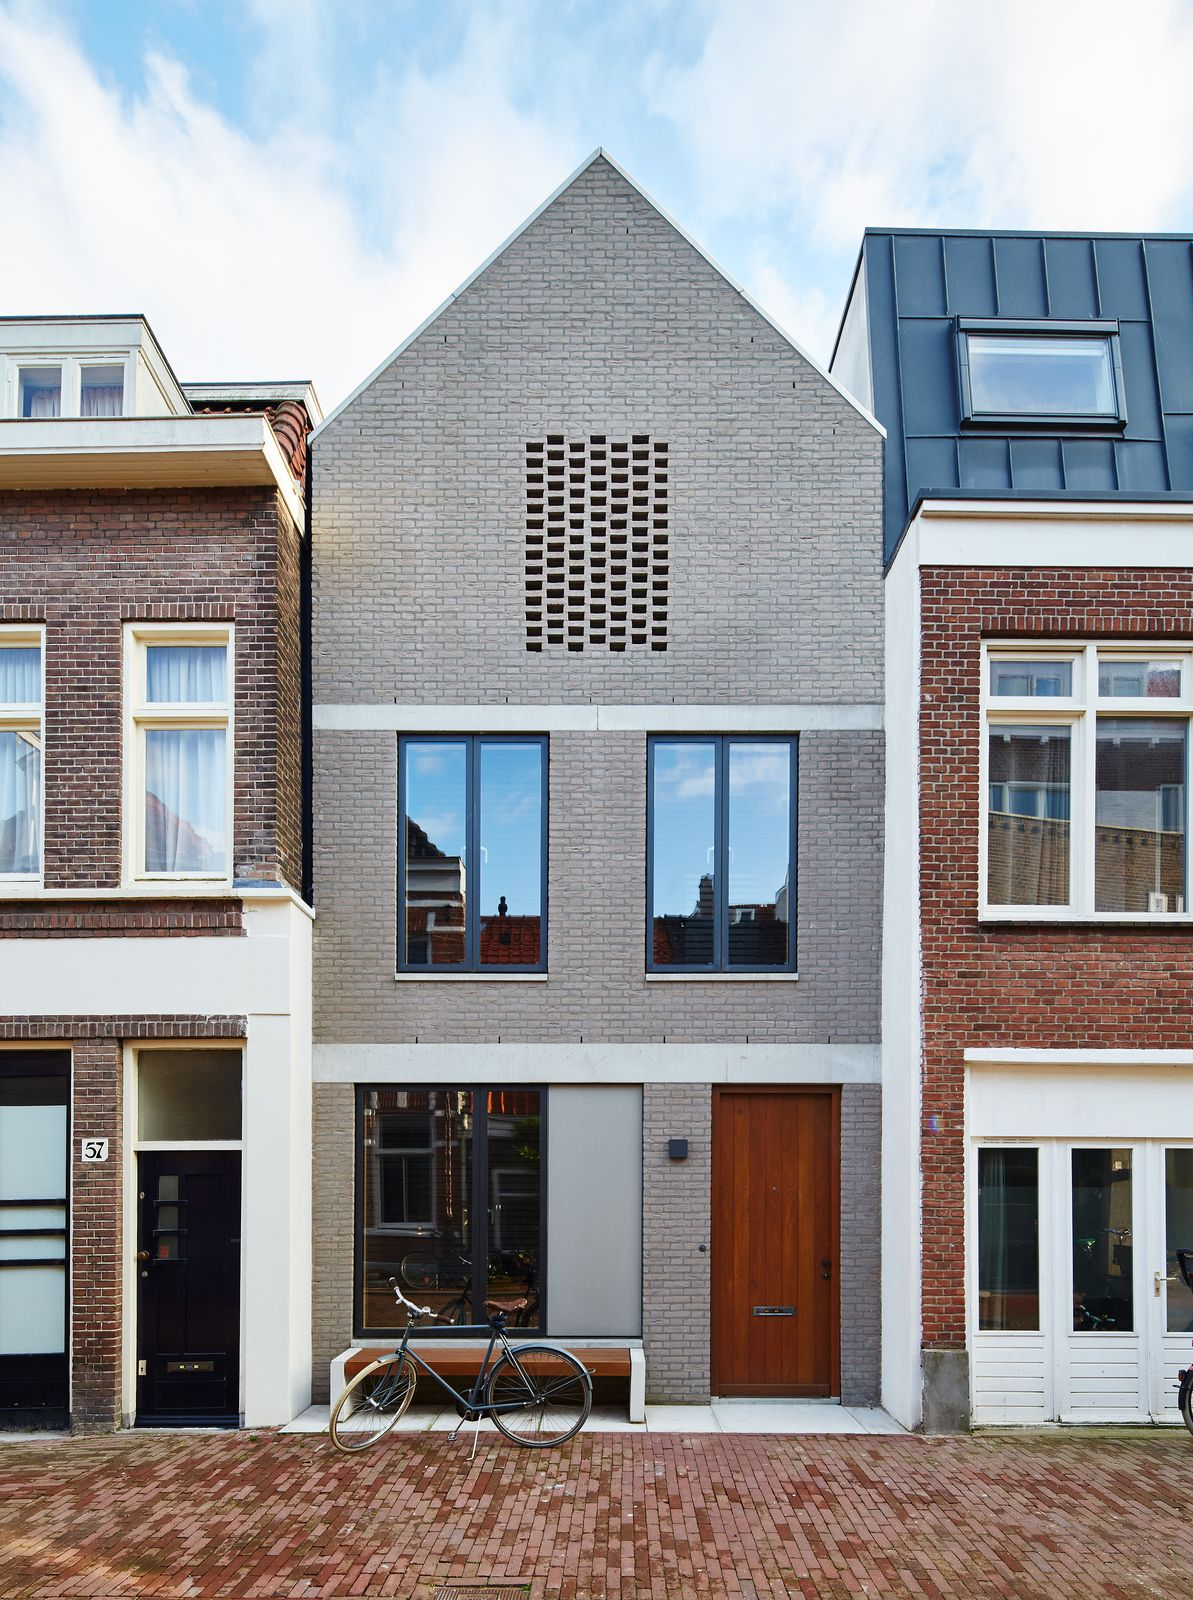 Charming By Setting An Amsterdam House A Few Feet Back From The Street, 31/44